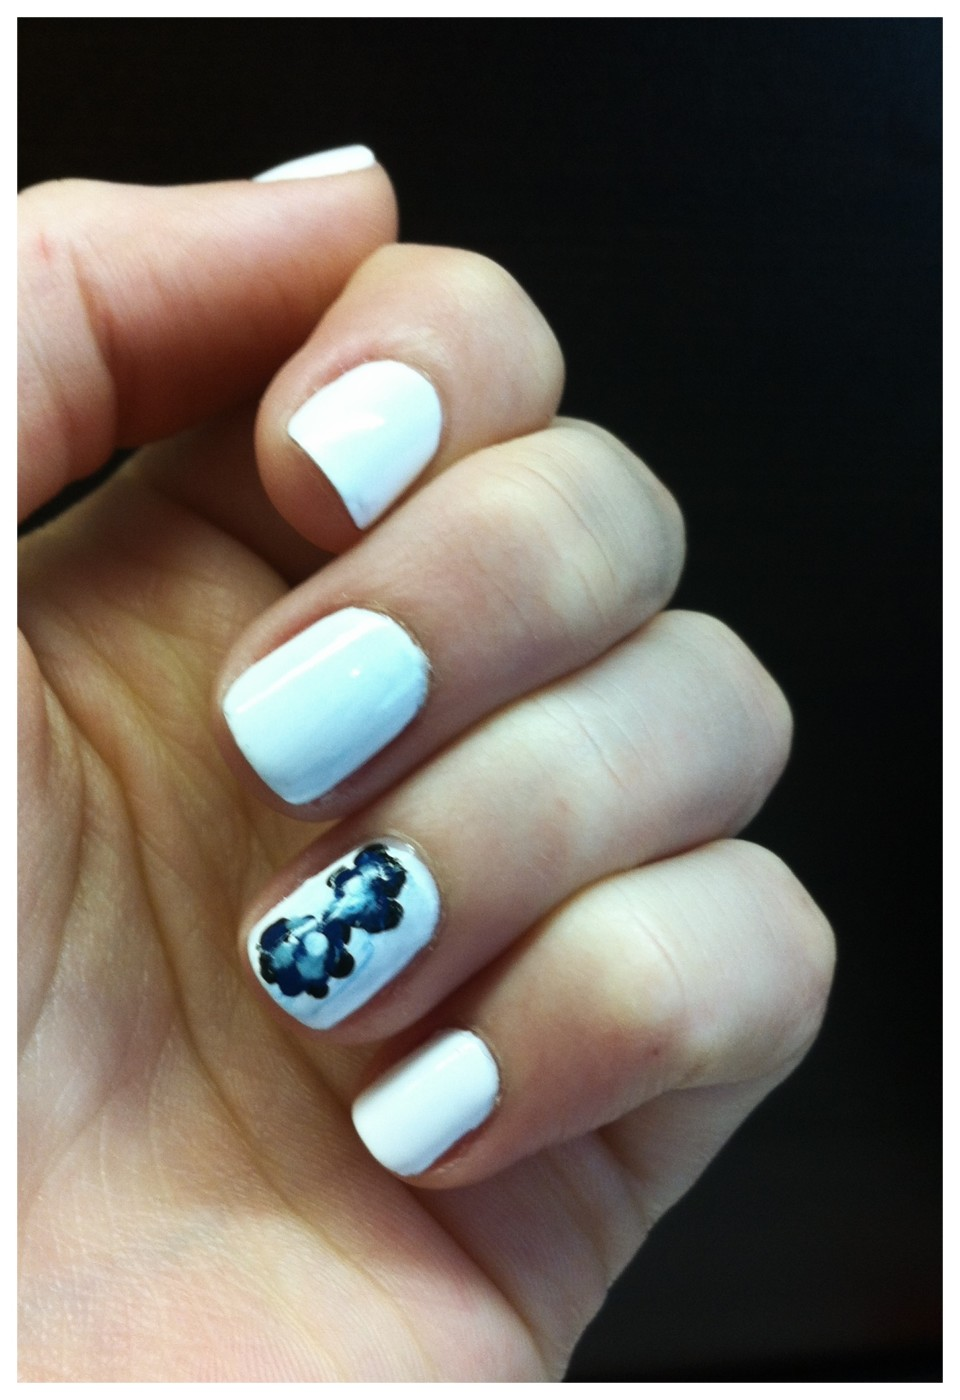 Polished Off: Emma Watson x Erdem Nails - Liner and Glitter and ...